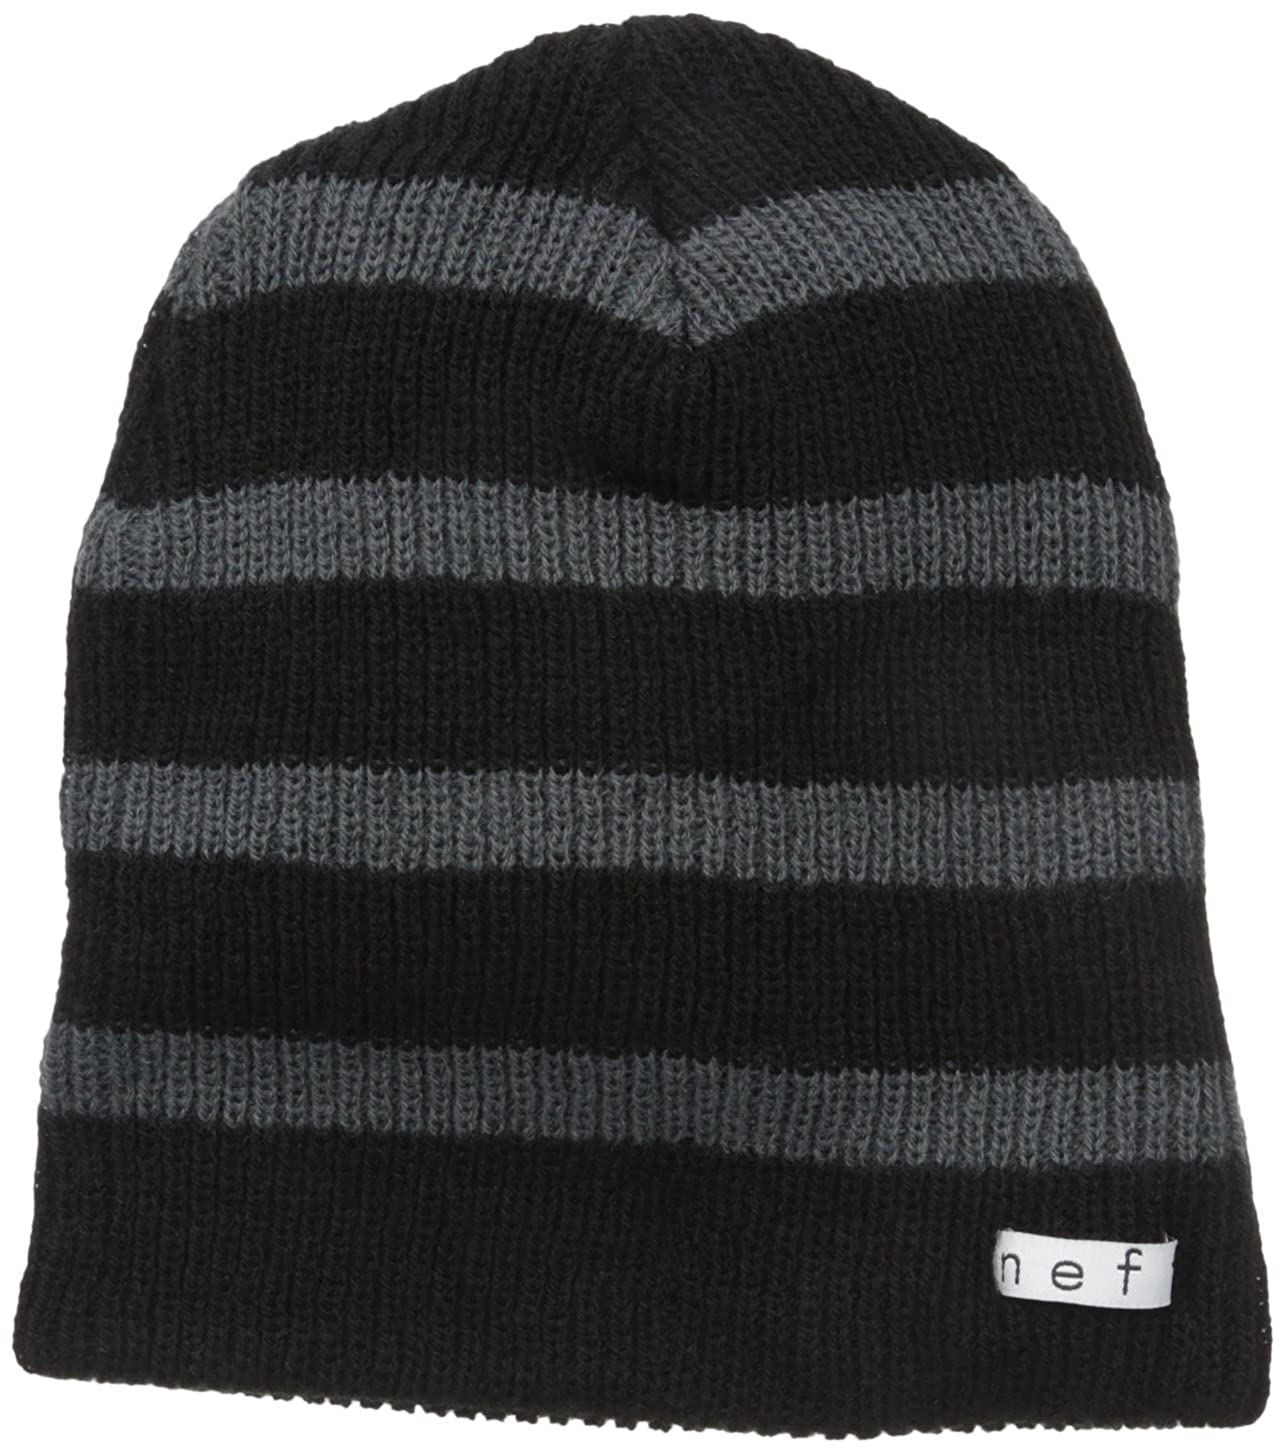 c50e78ee894 Amazon.com  NEFF Men s Daily Stripe Beanie